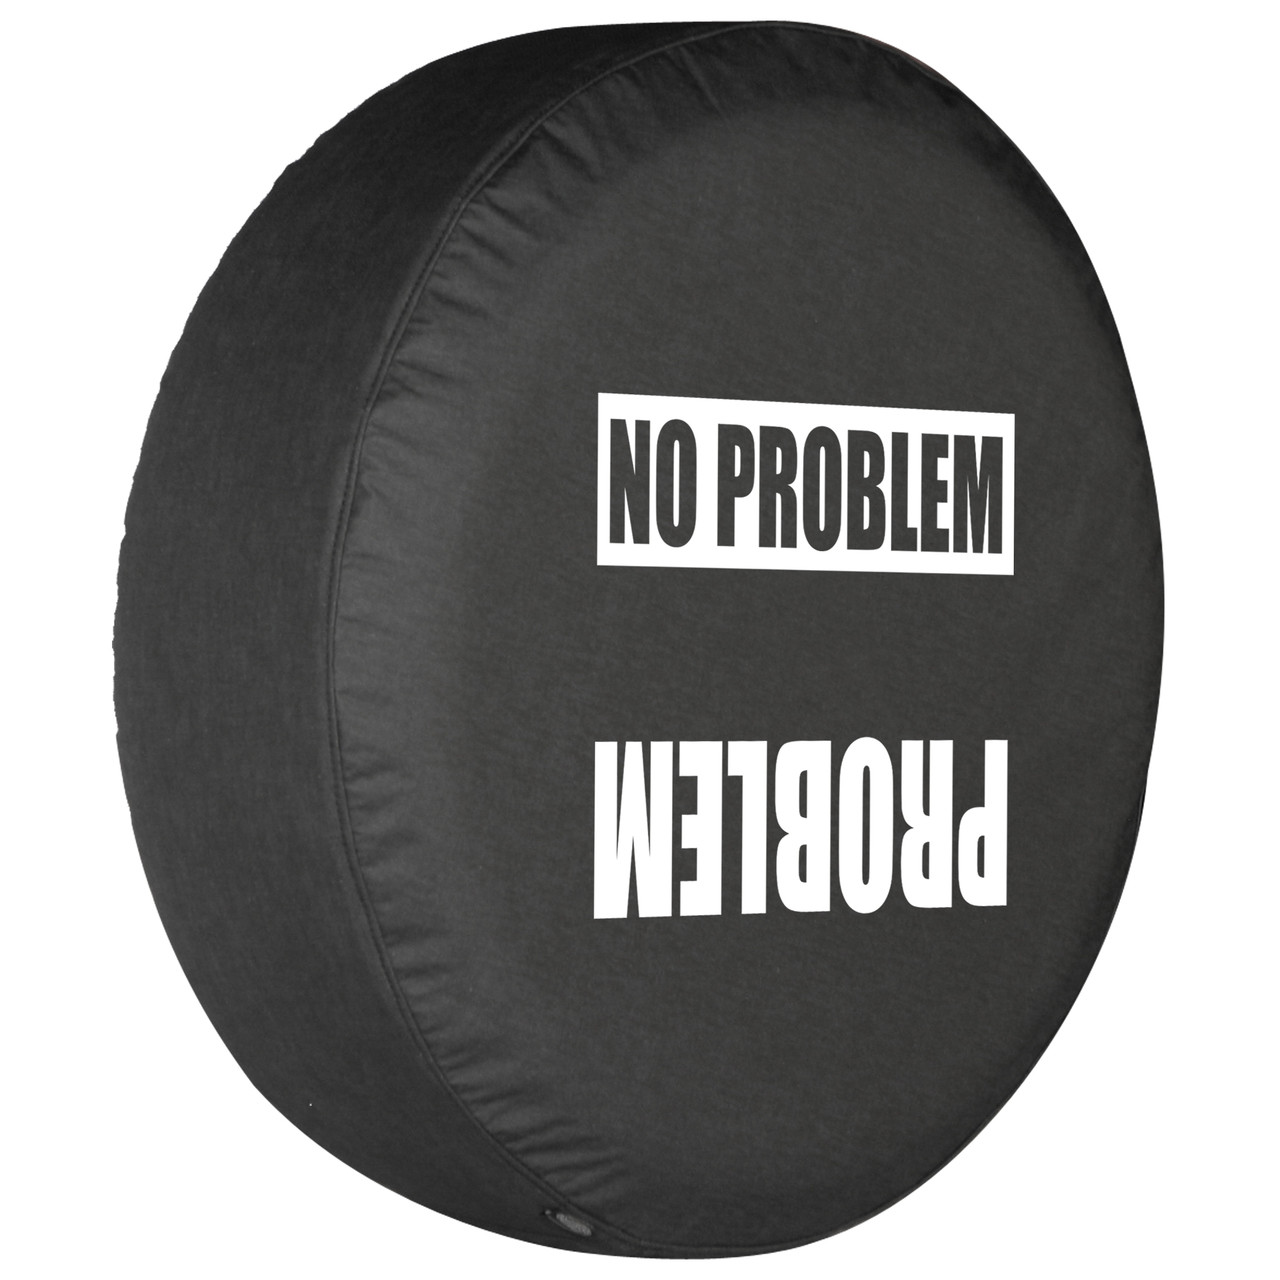 small resolution of problem no problem soft denim vinyl tire cover by boomerang